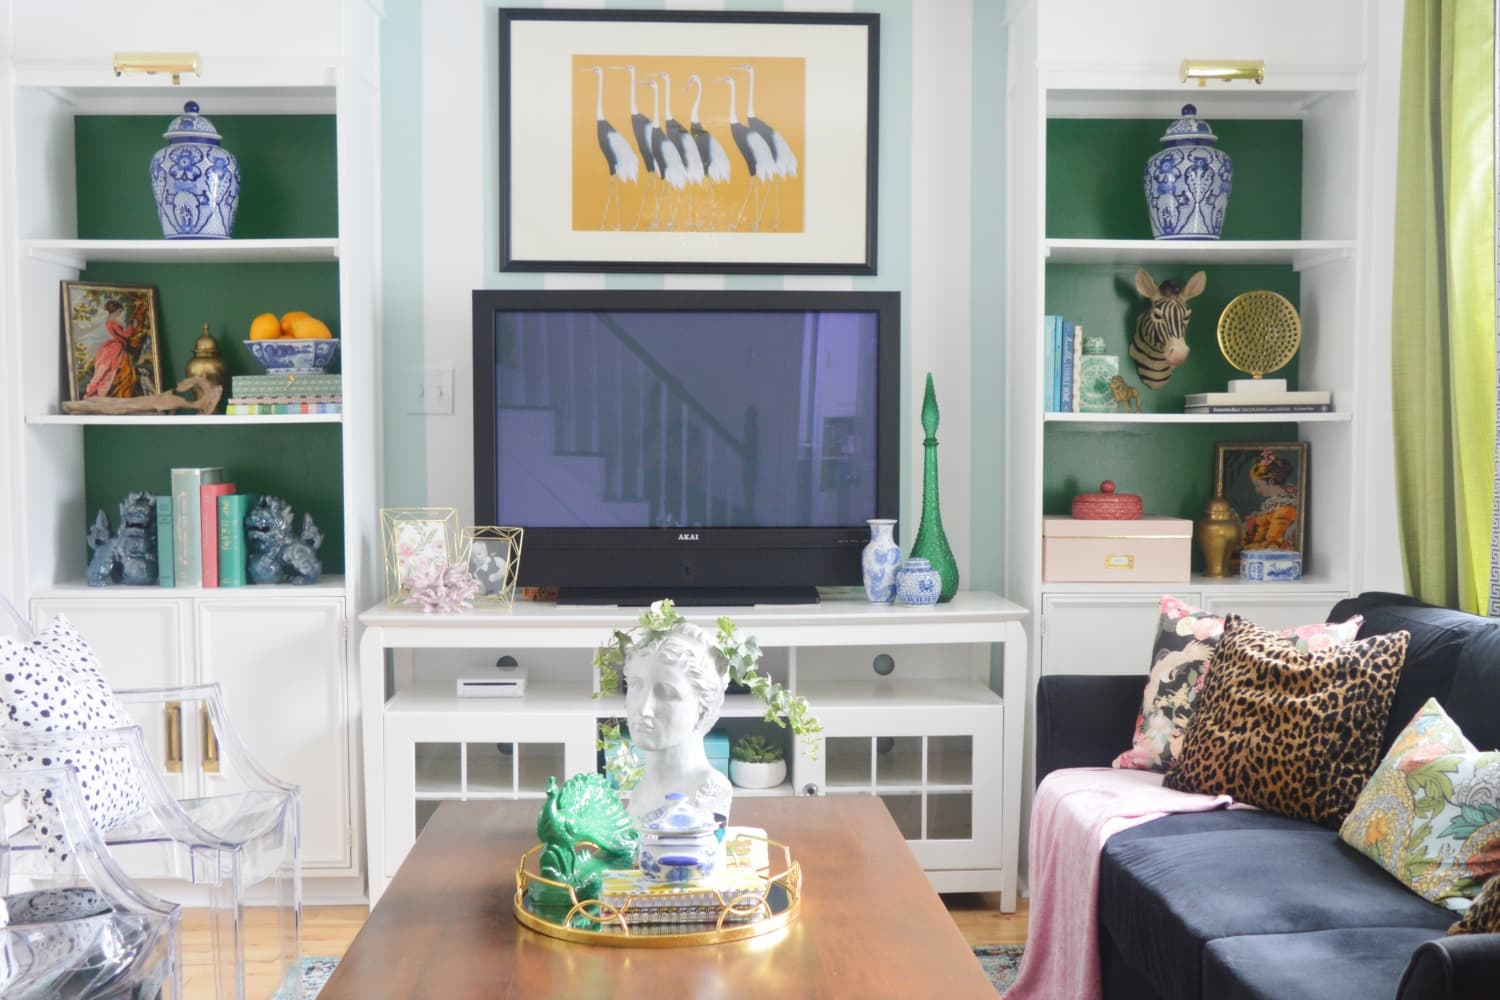 This Pretty, Patterned Home Is the Definition of Colorfully Eclectic